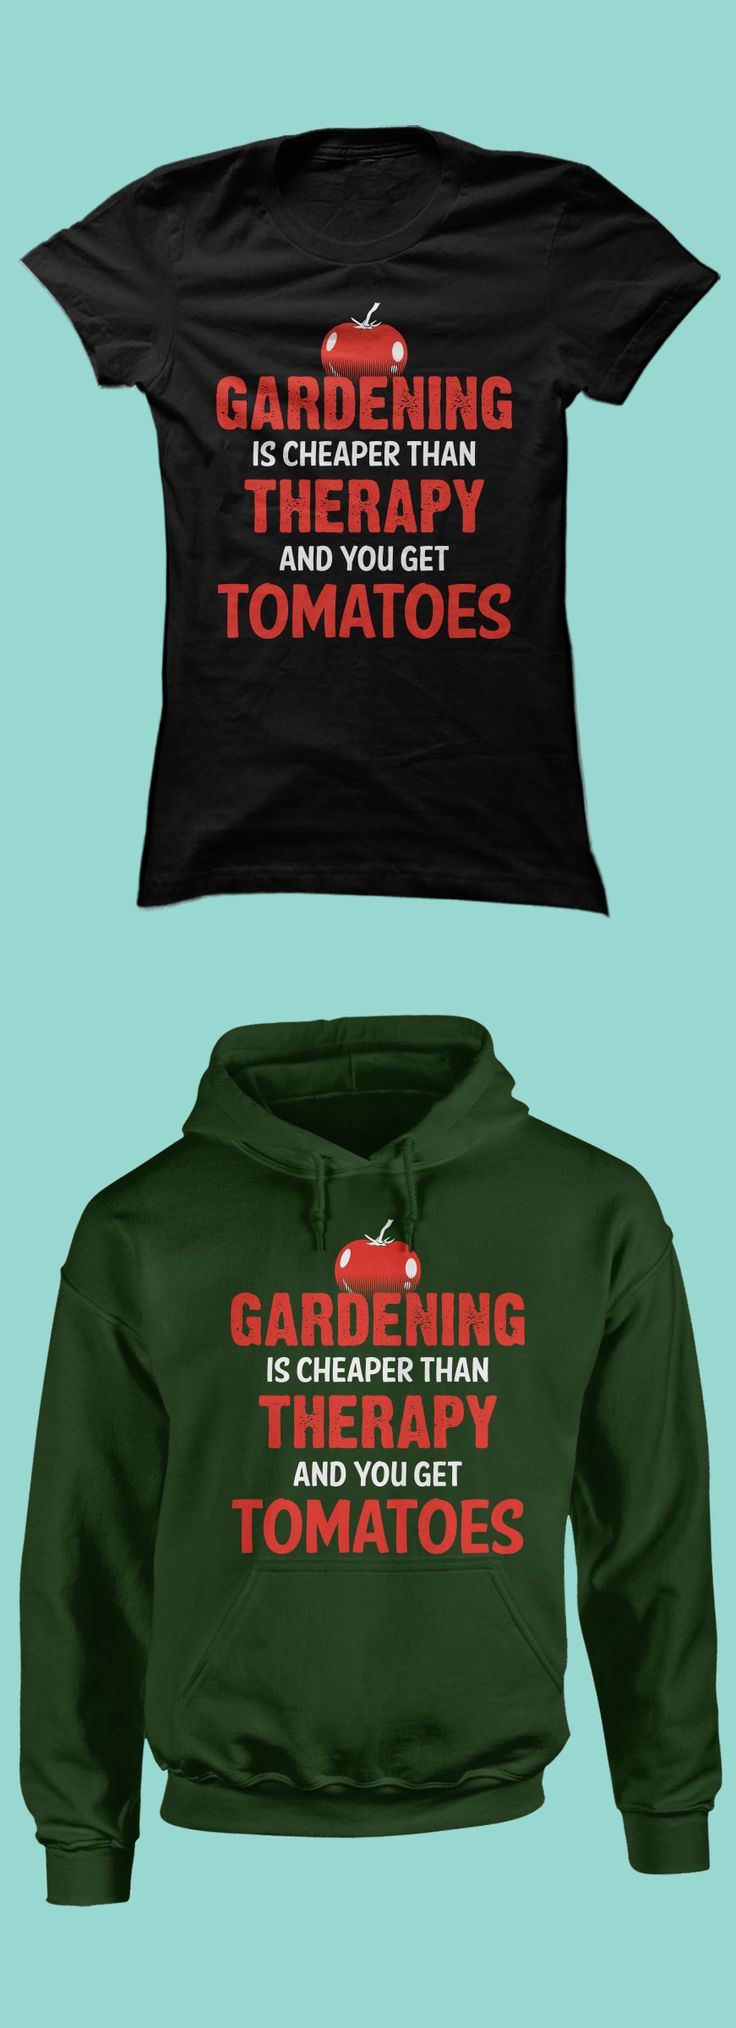 Now this is amazing gardening wear - I need this <3